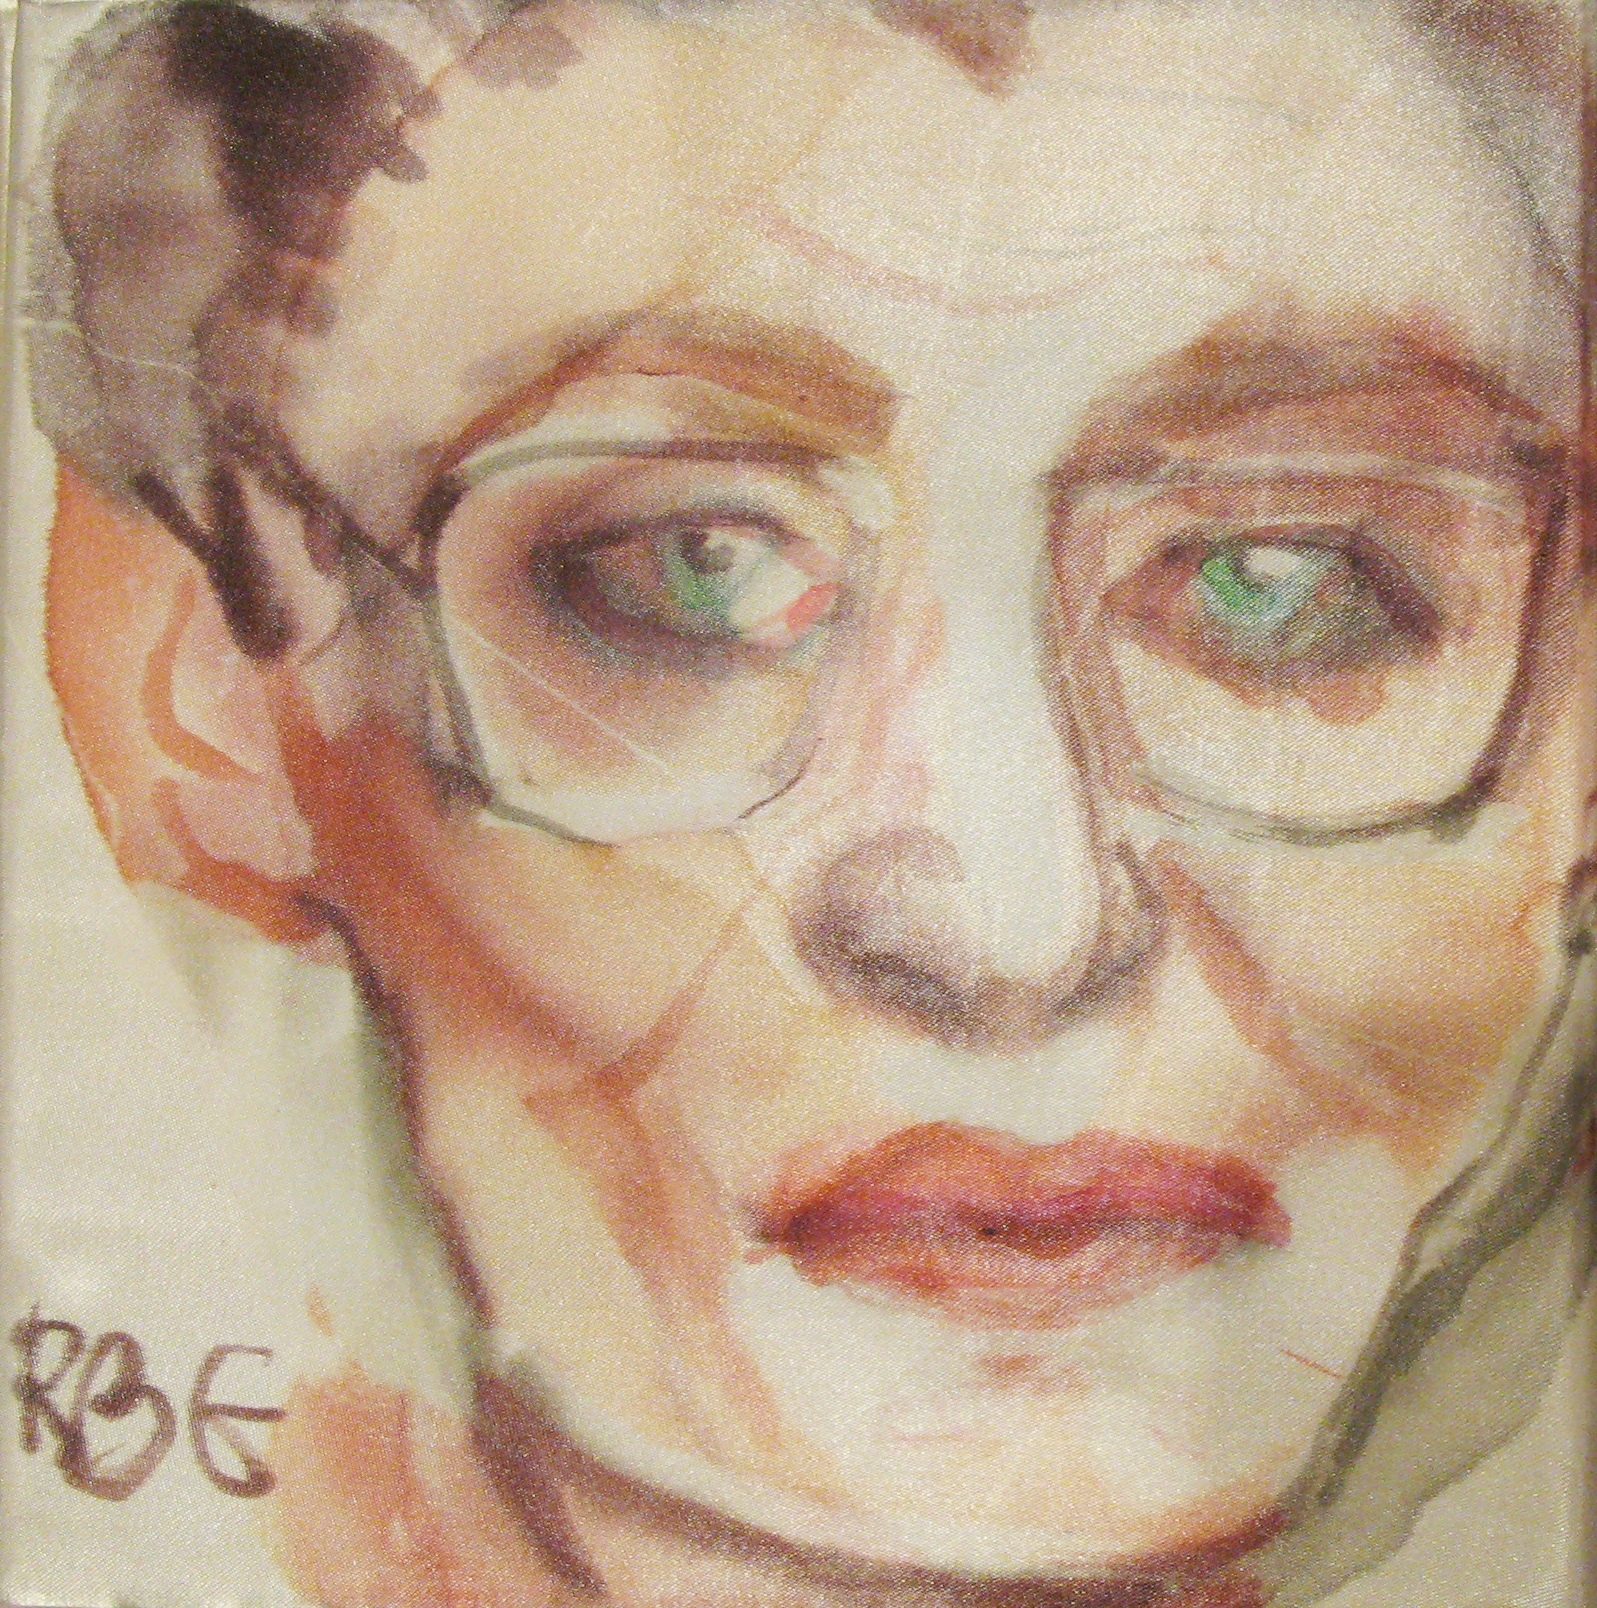 Justice Ginsburg, 20x20cm, watercolour on silk